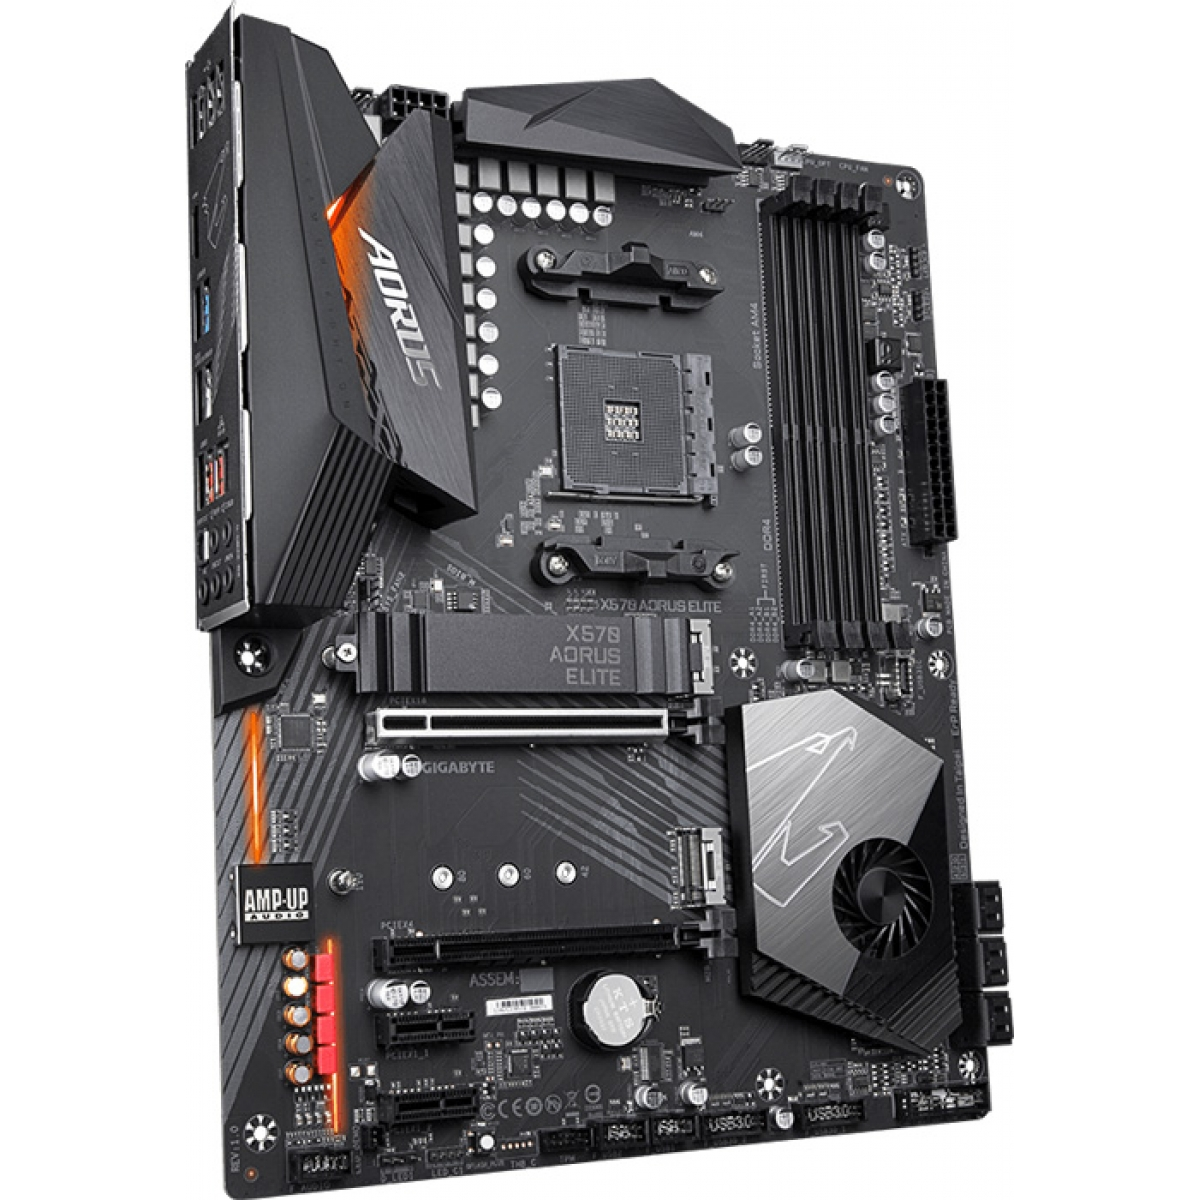 Placa Mãe Gigabyte X570 Aorus Elite, Chipset X570, AMD AM4, ATX, DDR4